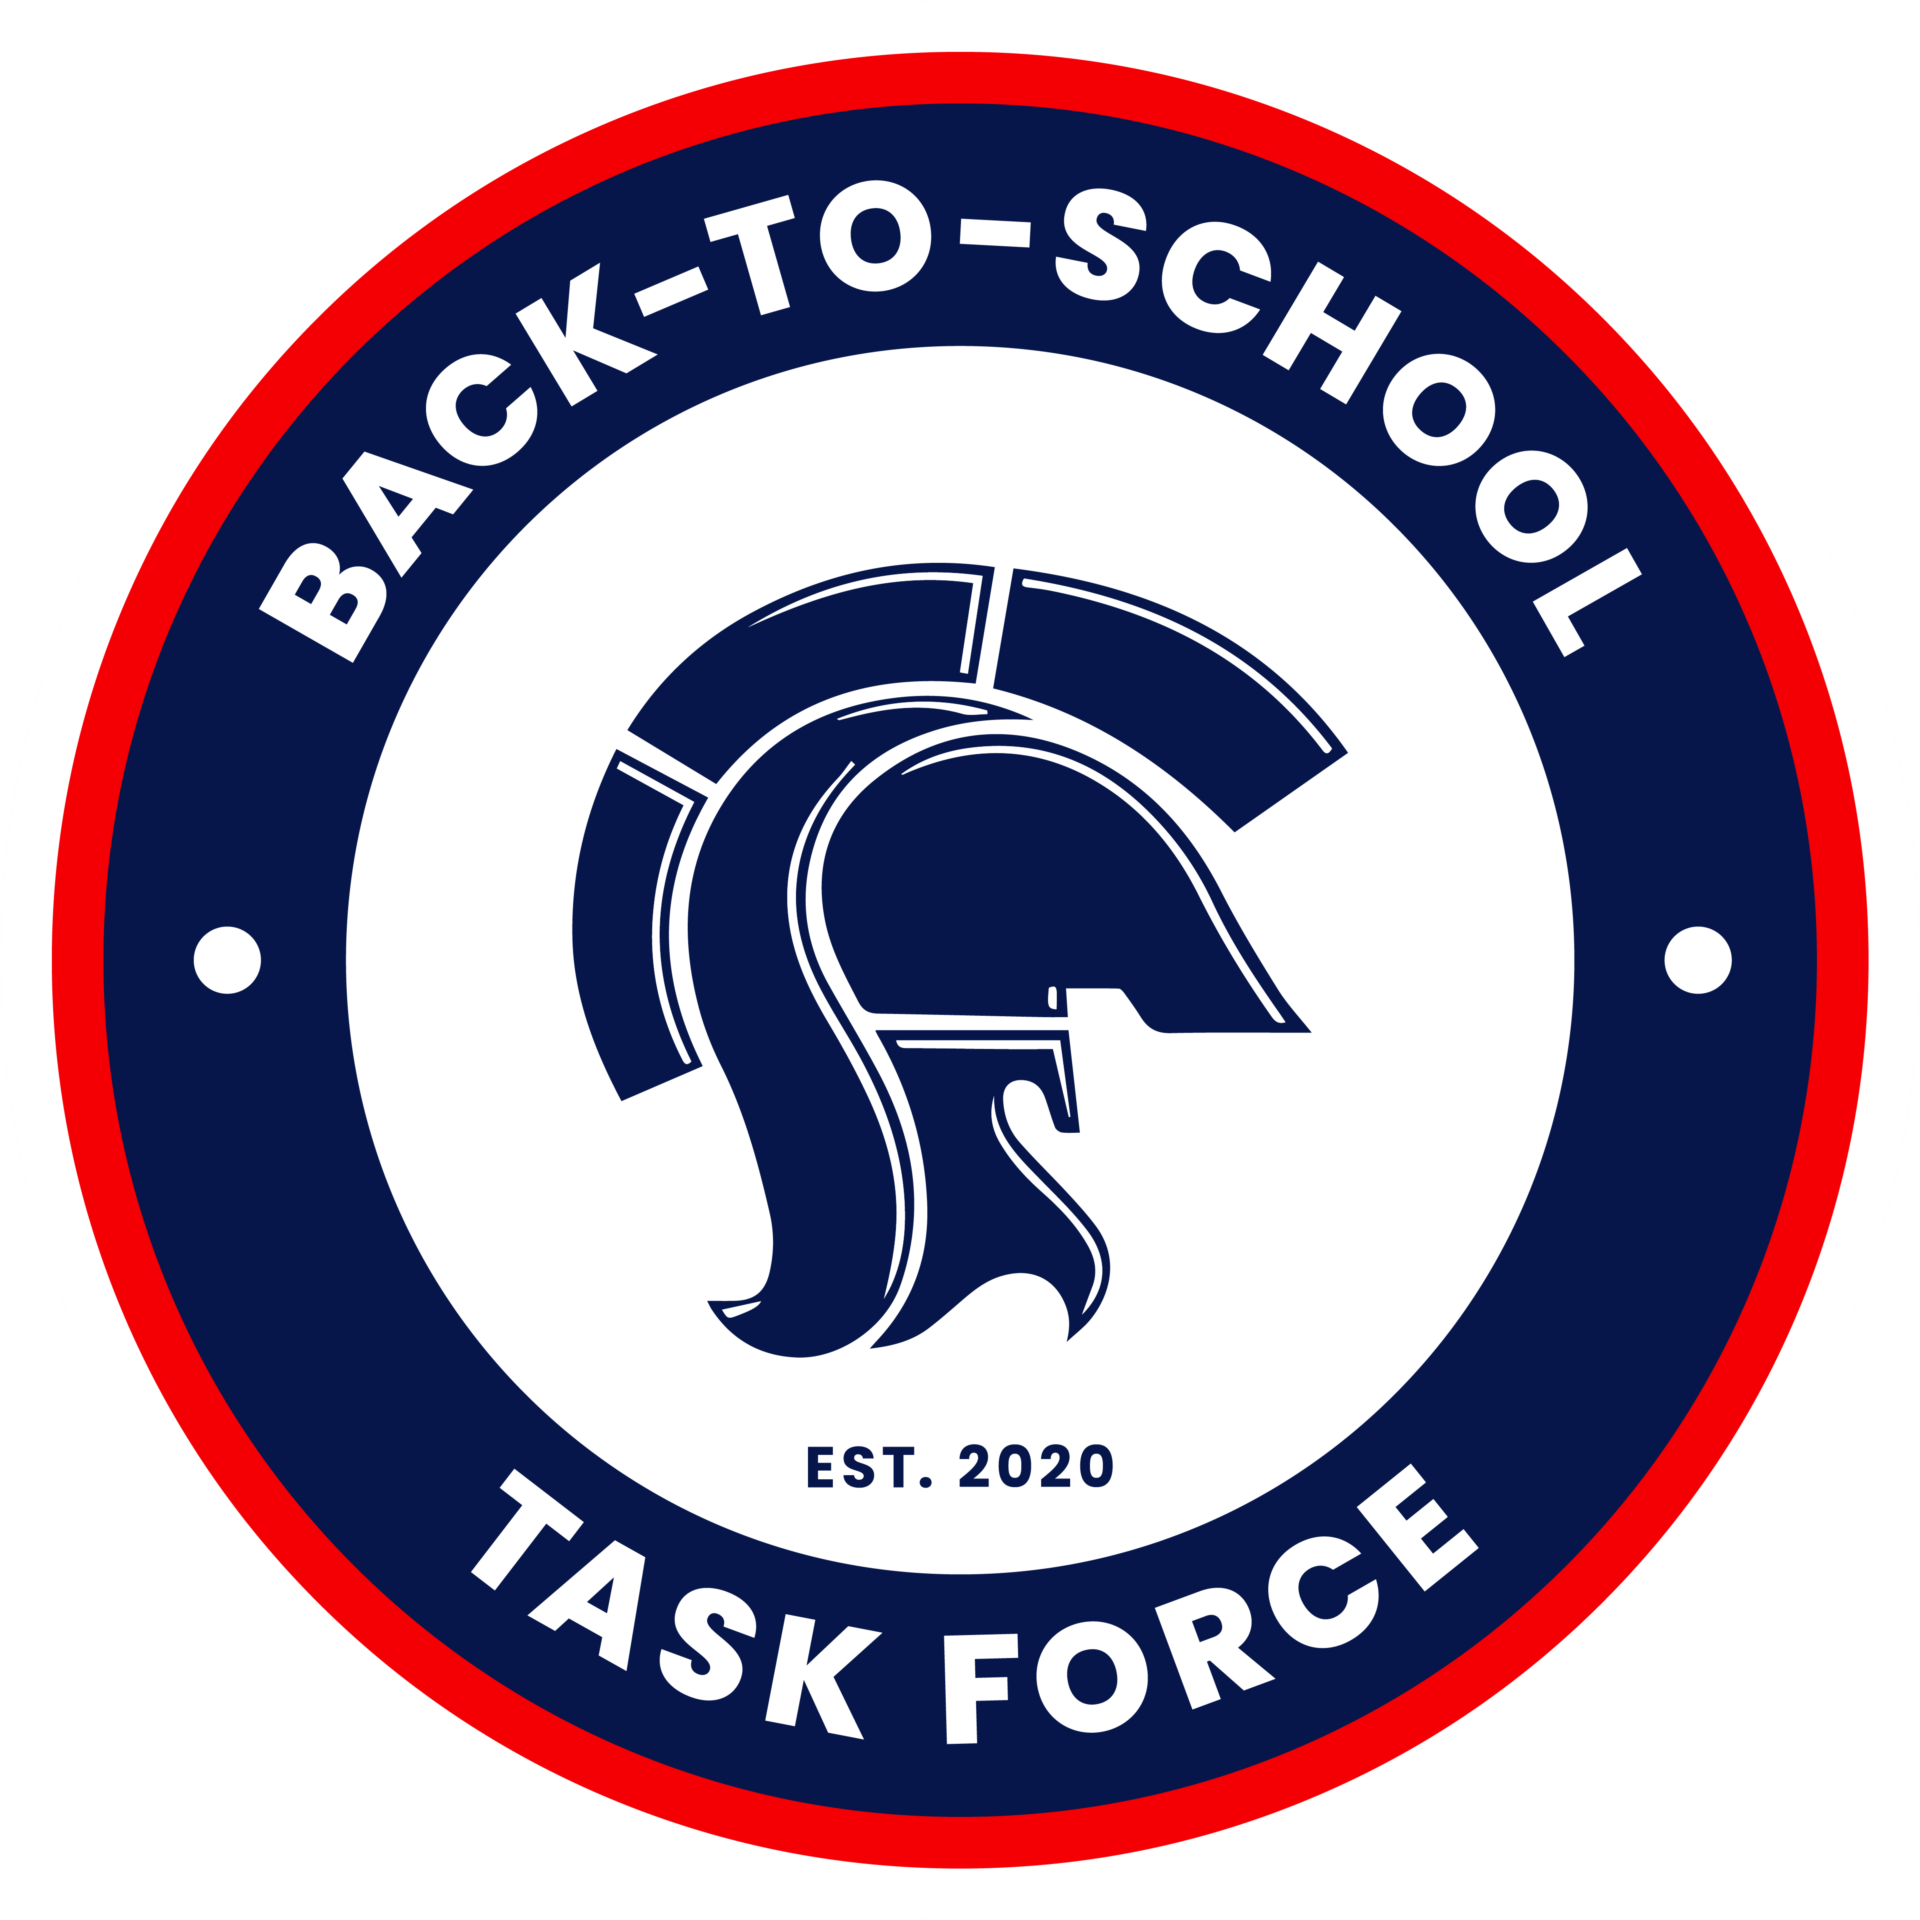 Back-to-School Task Force est. 2020 around Titan Head logo